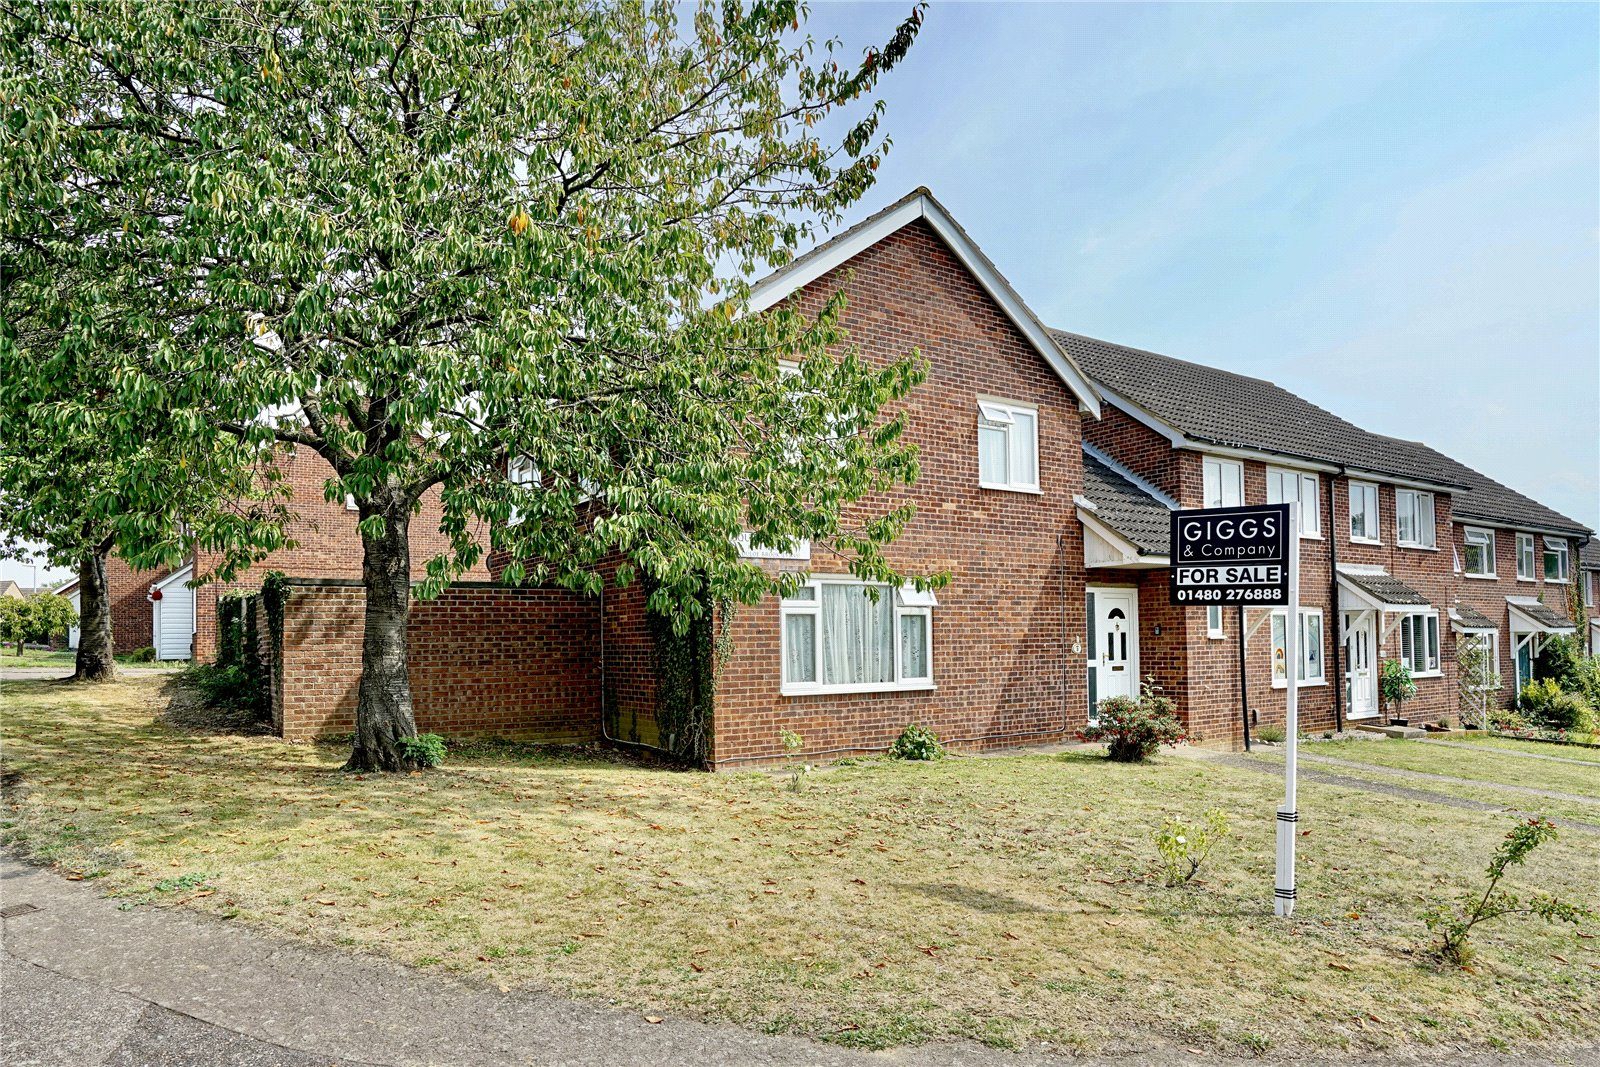 4 bed house for sale in Eaton Socon, Squires Court, PE19 8PB  - Property Image 1